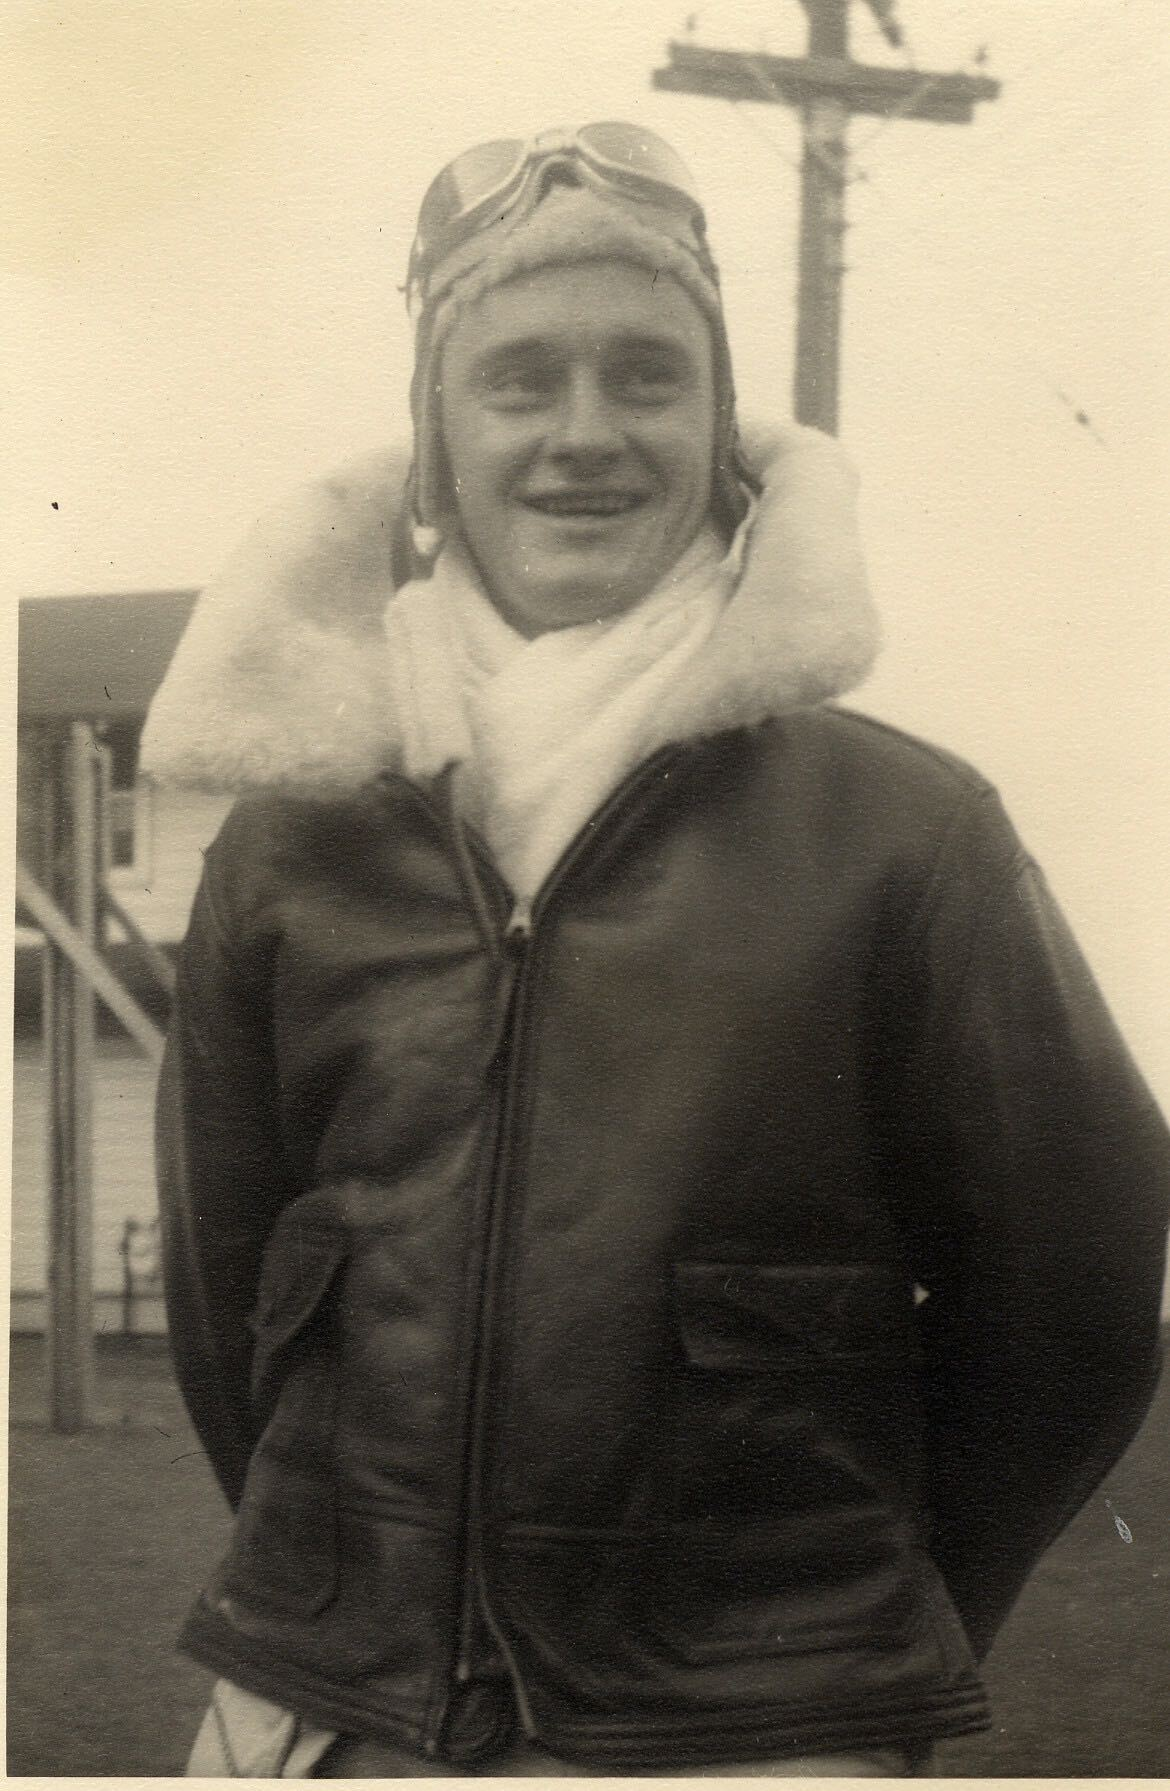 My grandfather, James Chester Roush, wearing his bombardier jacket prior to a training mission aboard the B-26 bomber he flew with the U.S. Army Air Corps